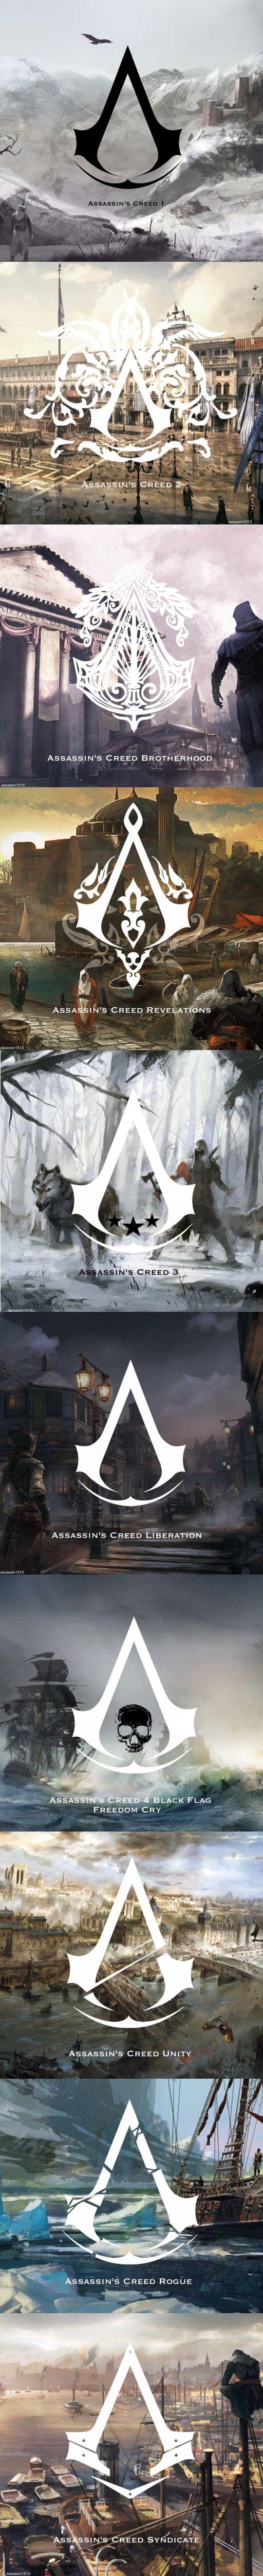 Assassins Creed Games And Their Respective Symbols I Love The